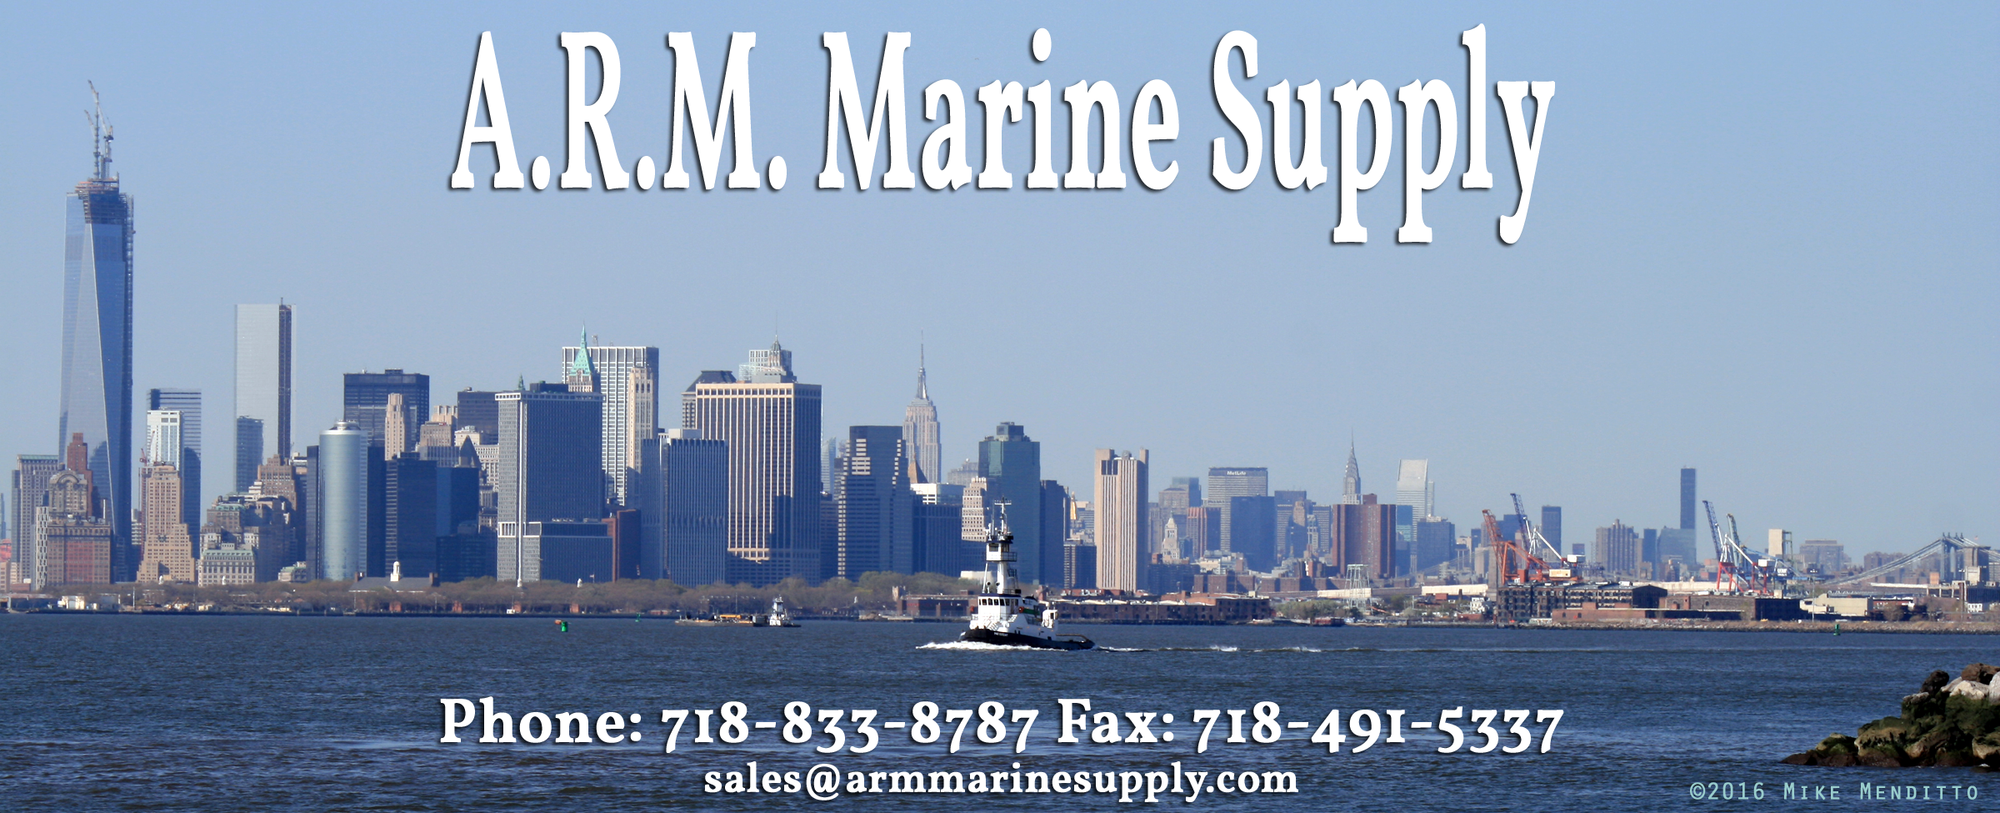 A.R.M. Marine Supply